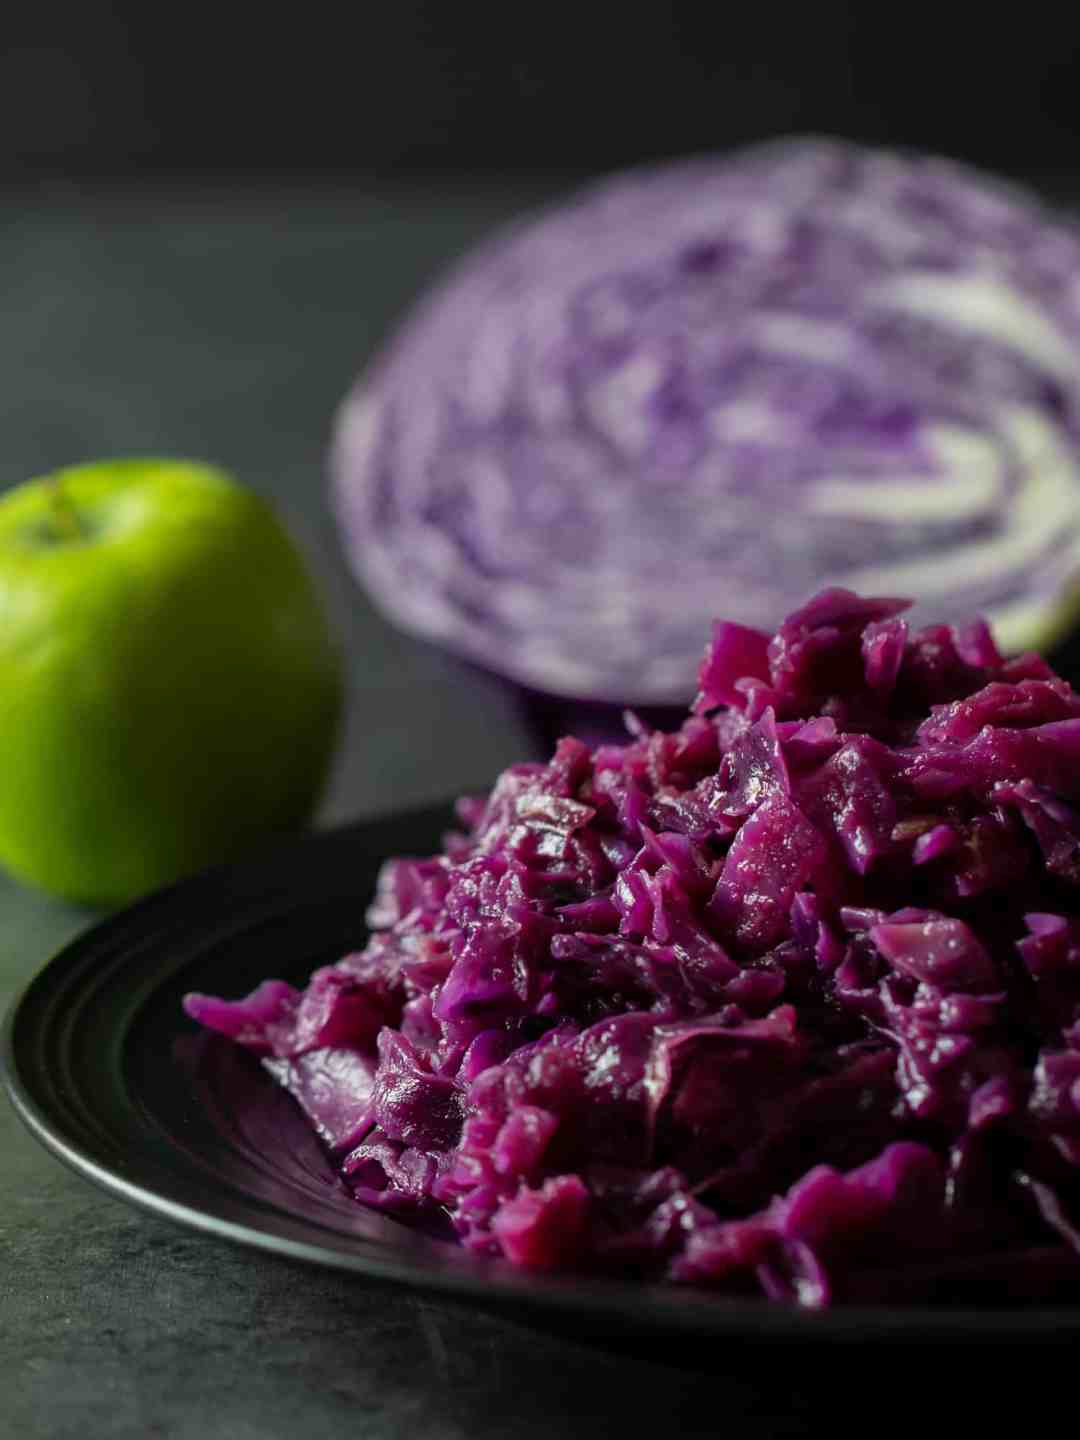 Tall image of a plate of braised red cabbage and apples.